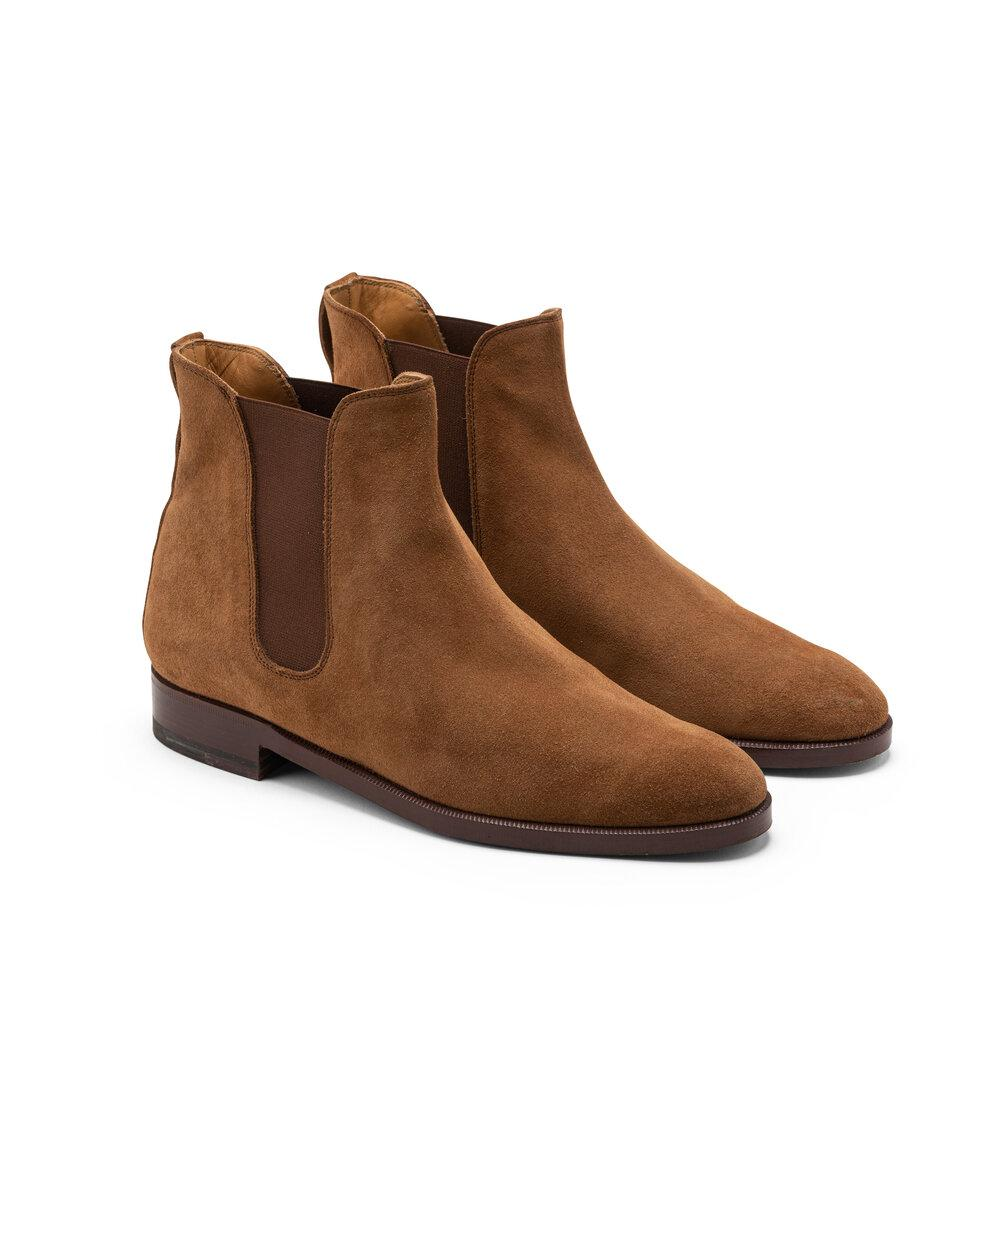 ODPEssentials Classic Chelsea Boot - Tan Suede 1